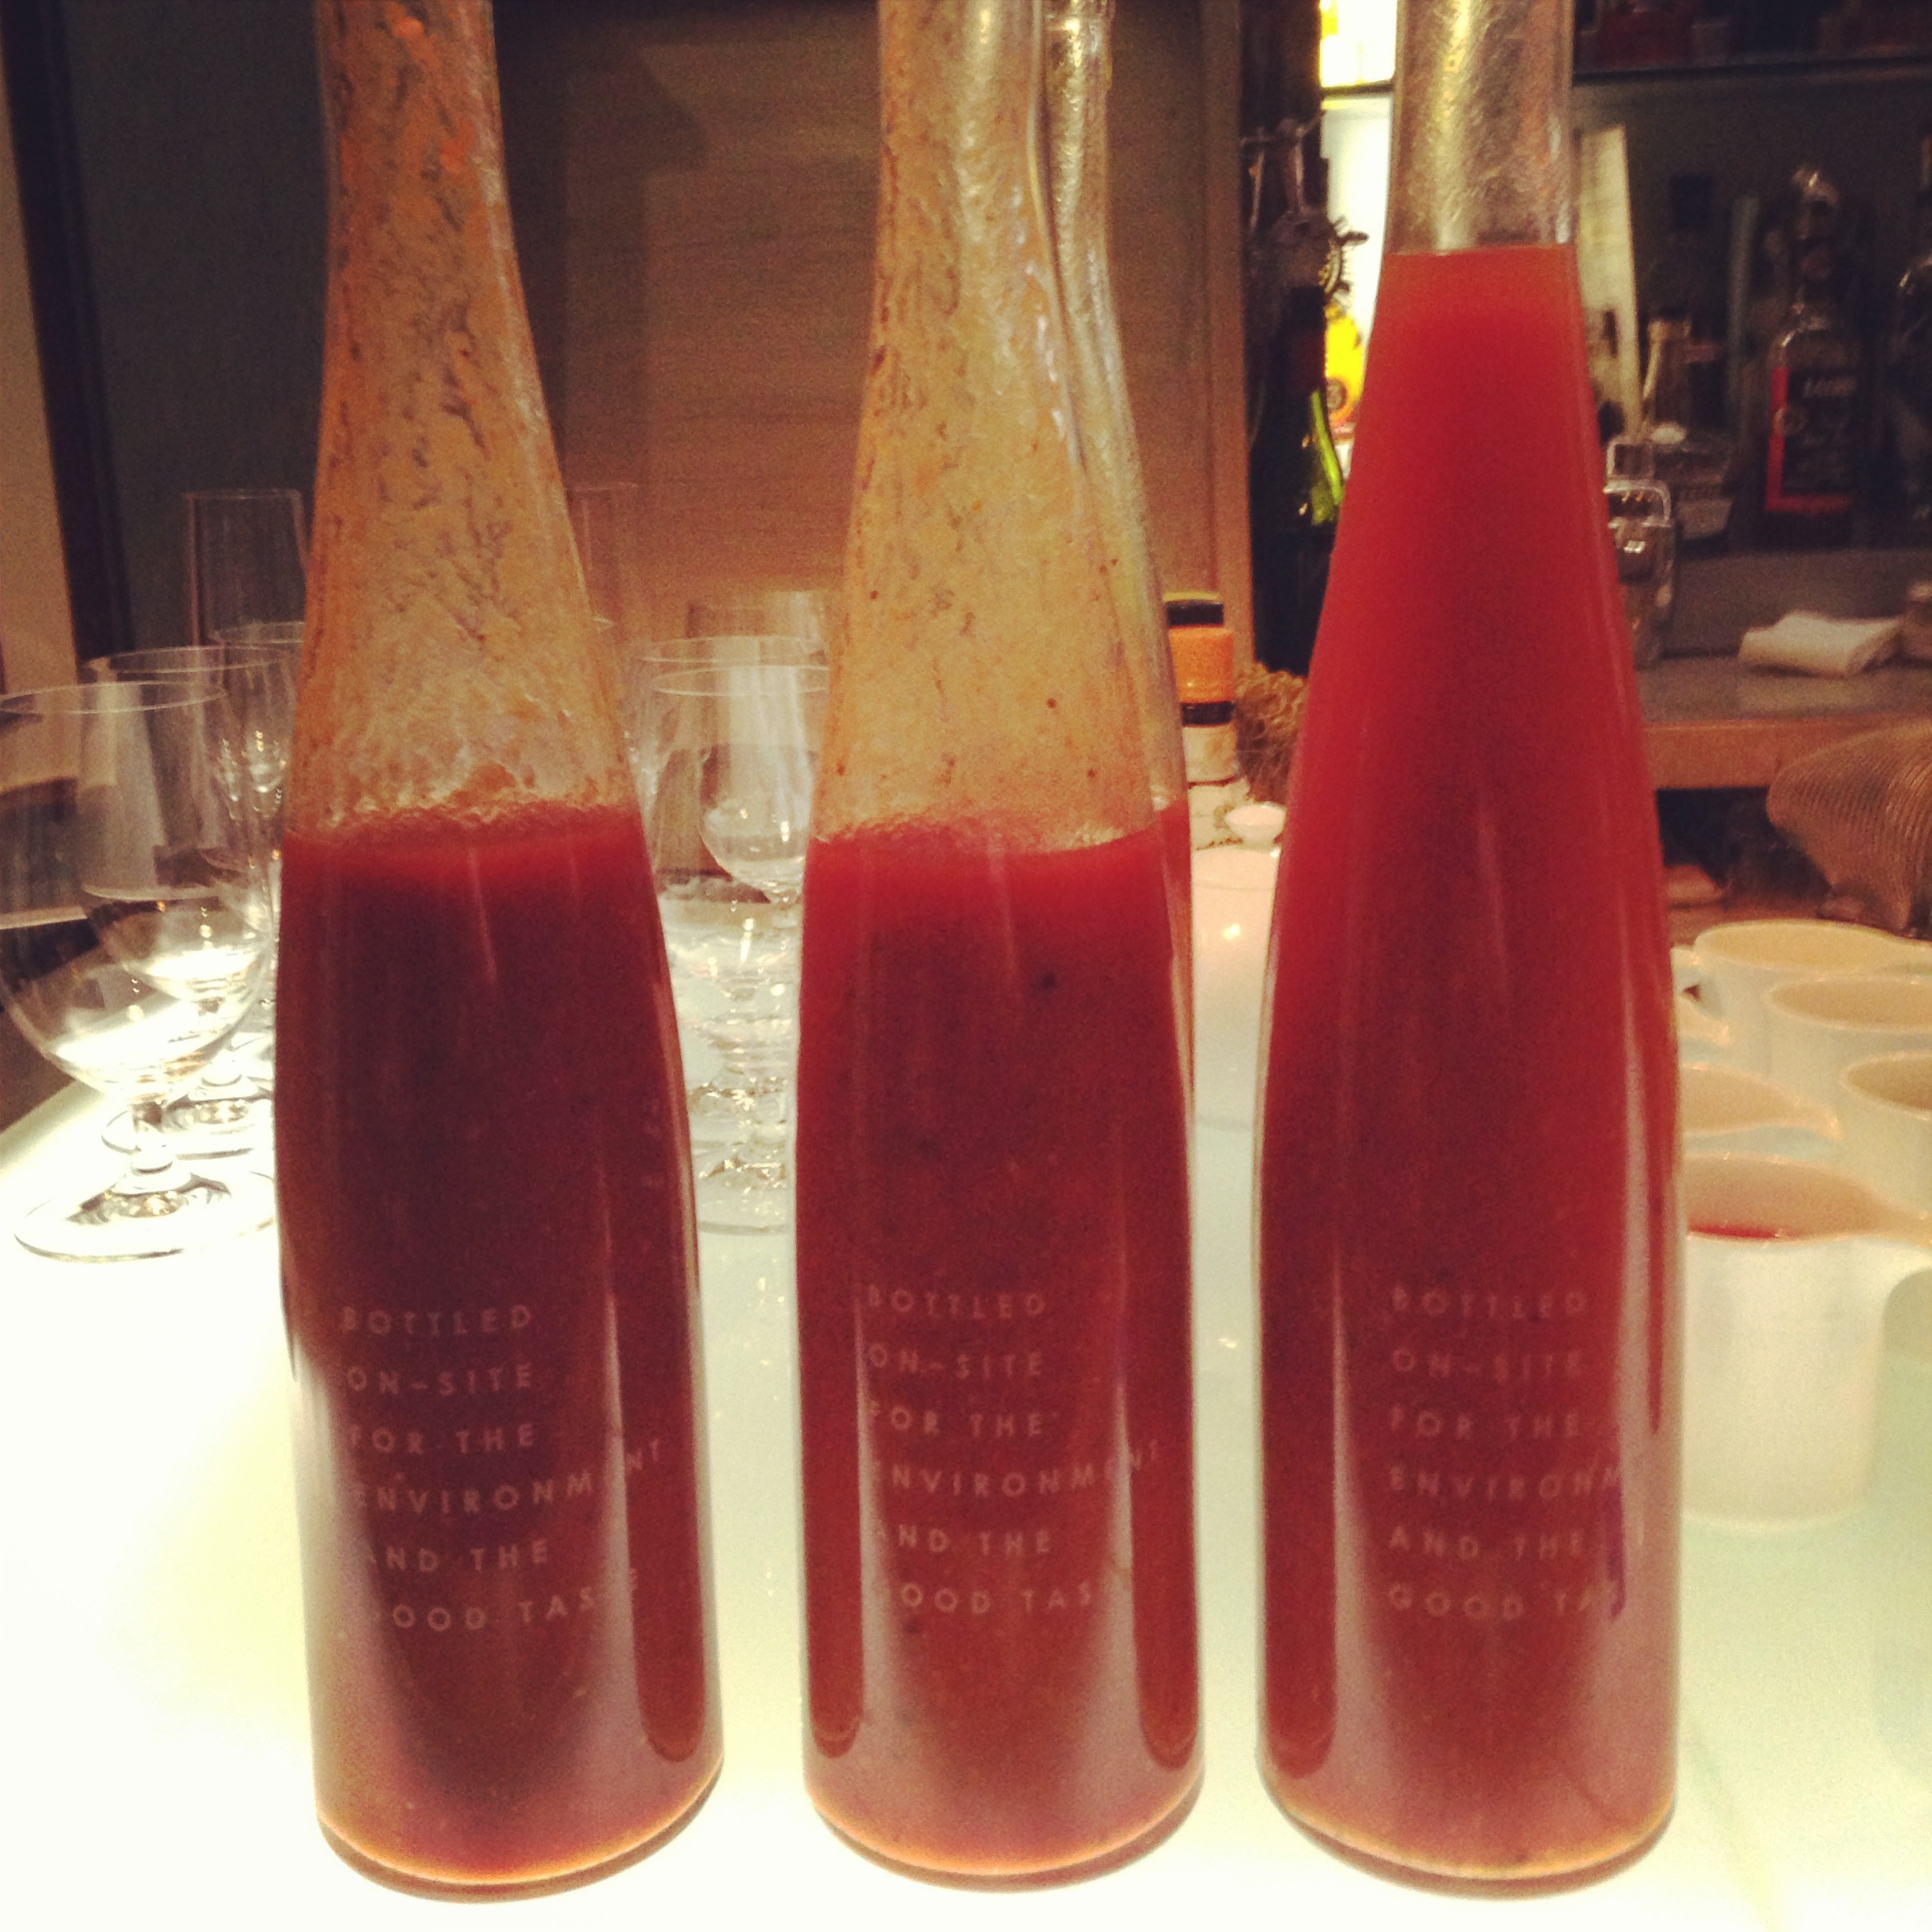 Bloody Mary mixes